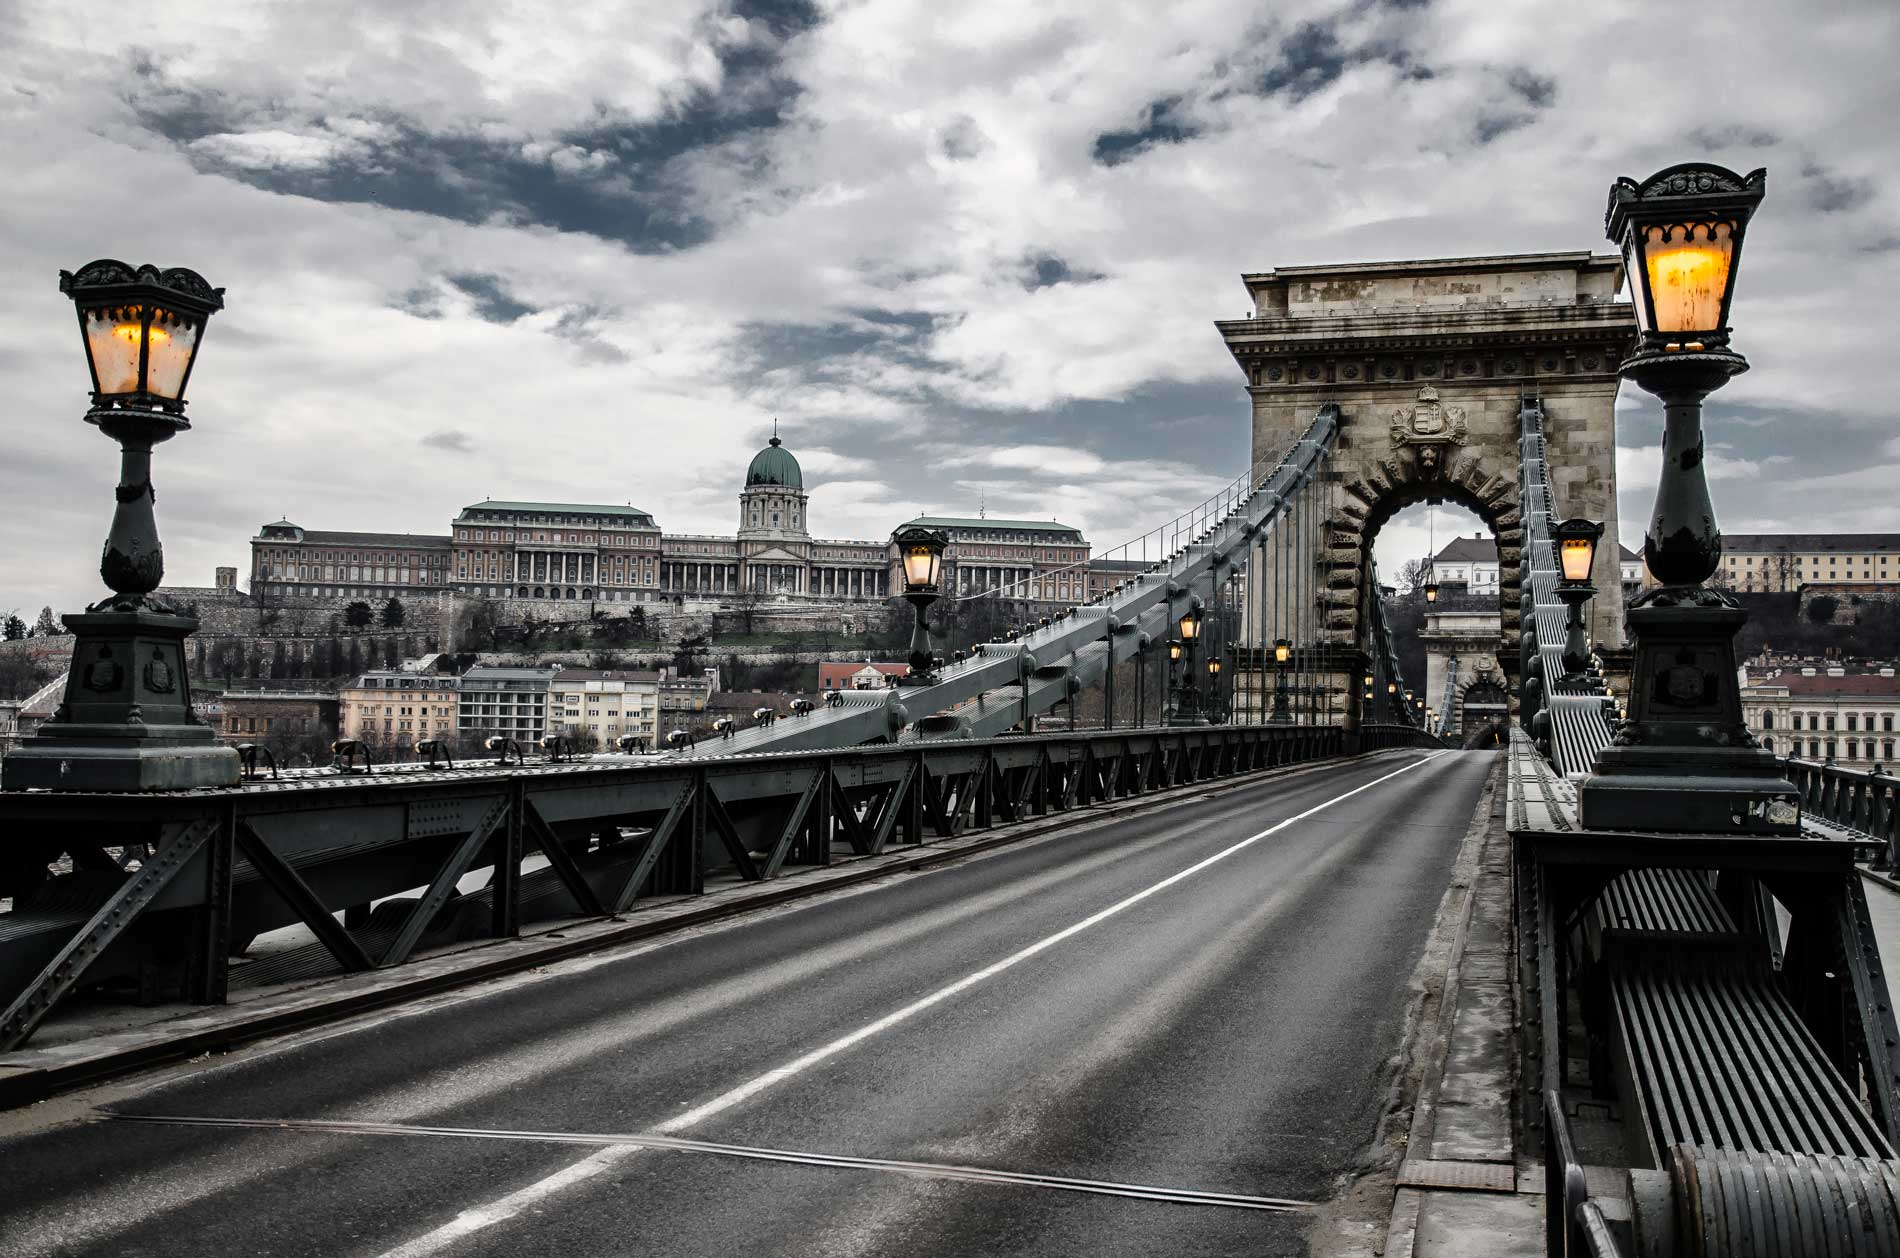 budapest_atthary_photography_bridge_19